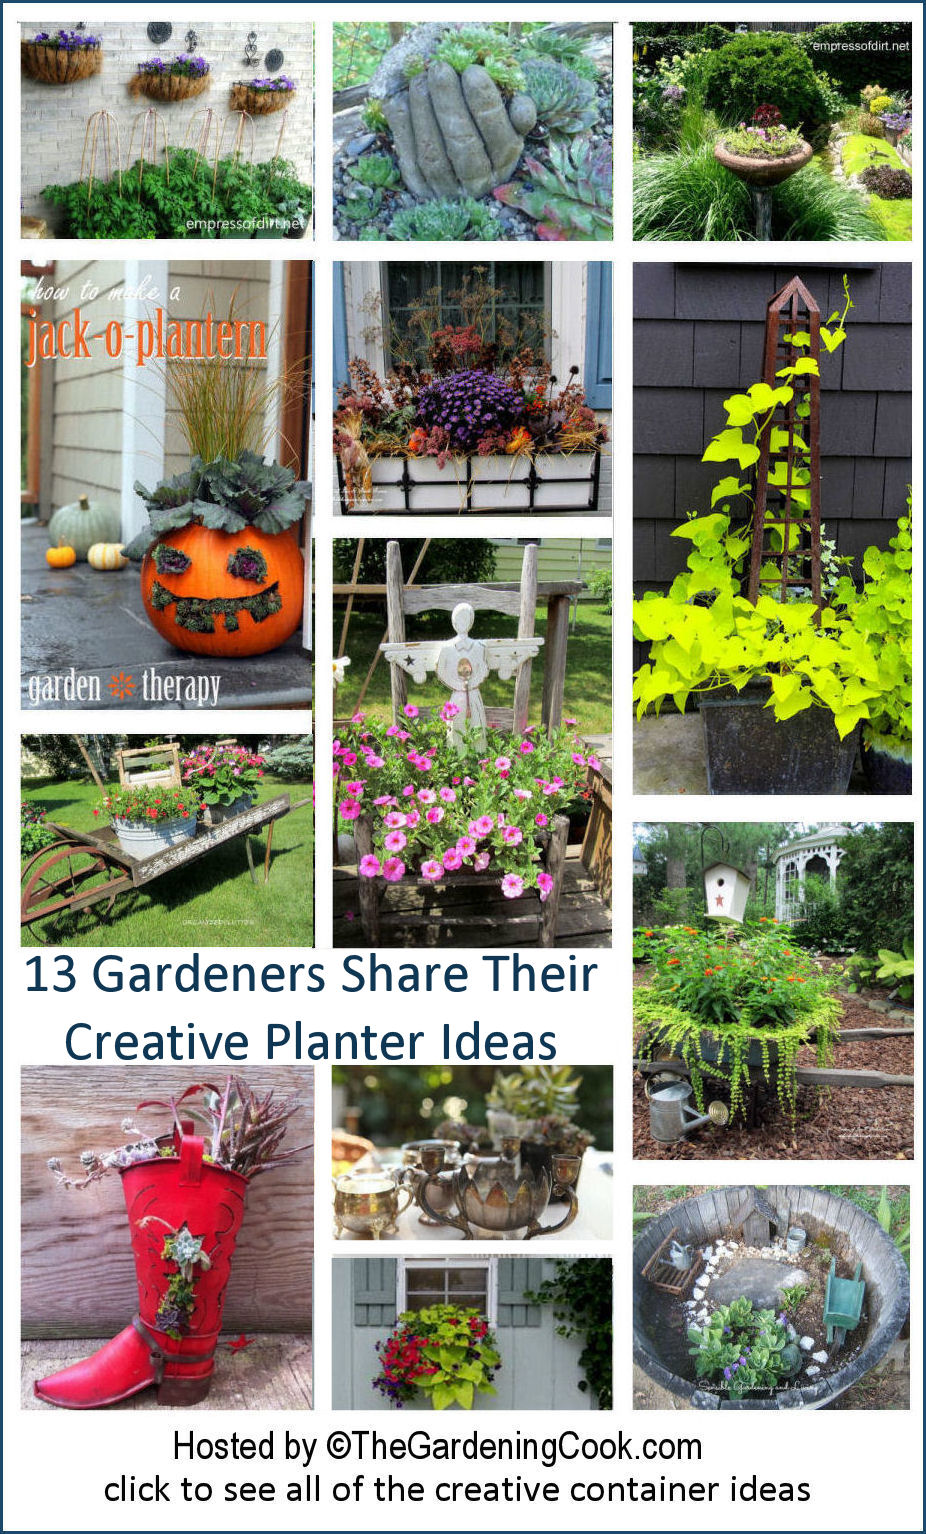 Ideas For Planting Succulents: 13 Garden Bloggers Share Creative Container And Planter Ideas